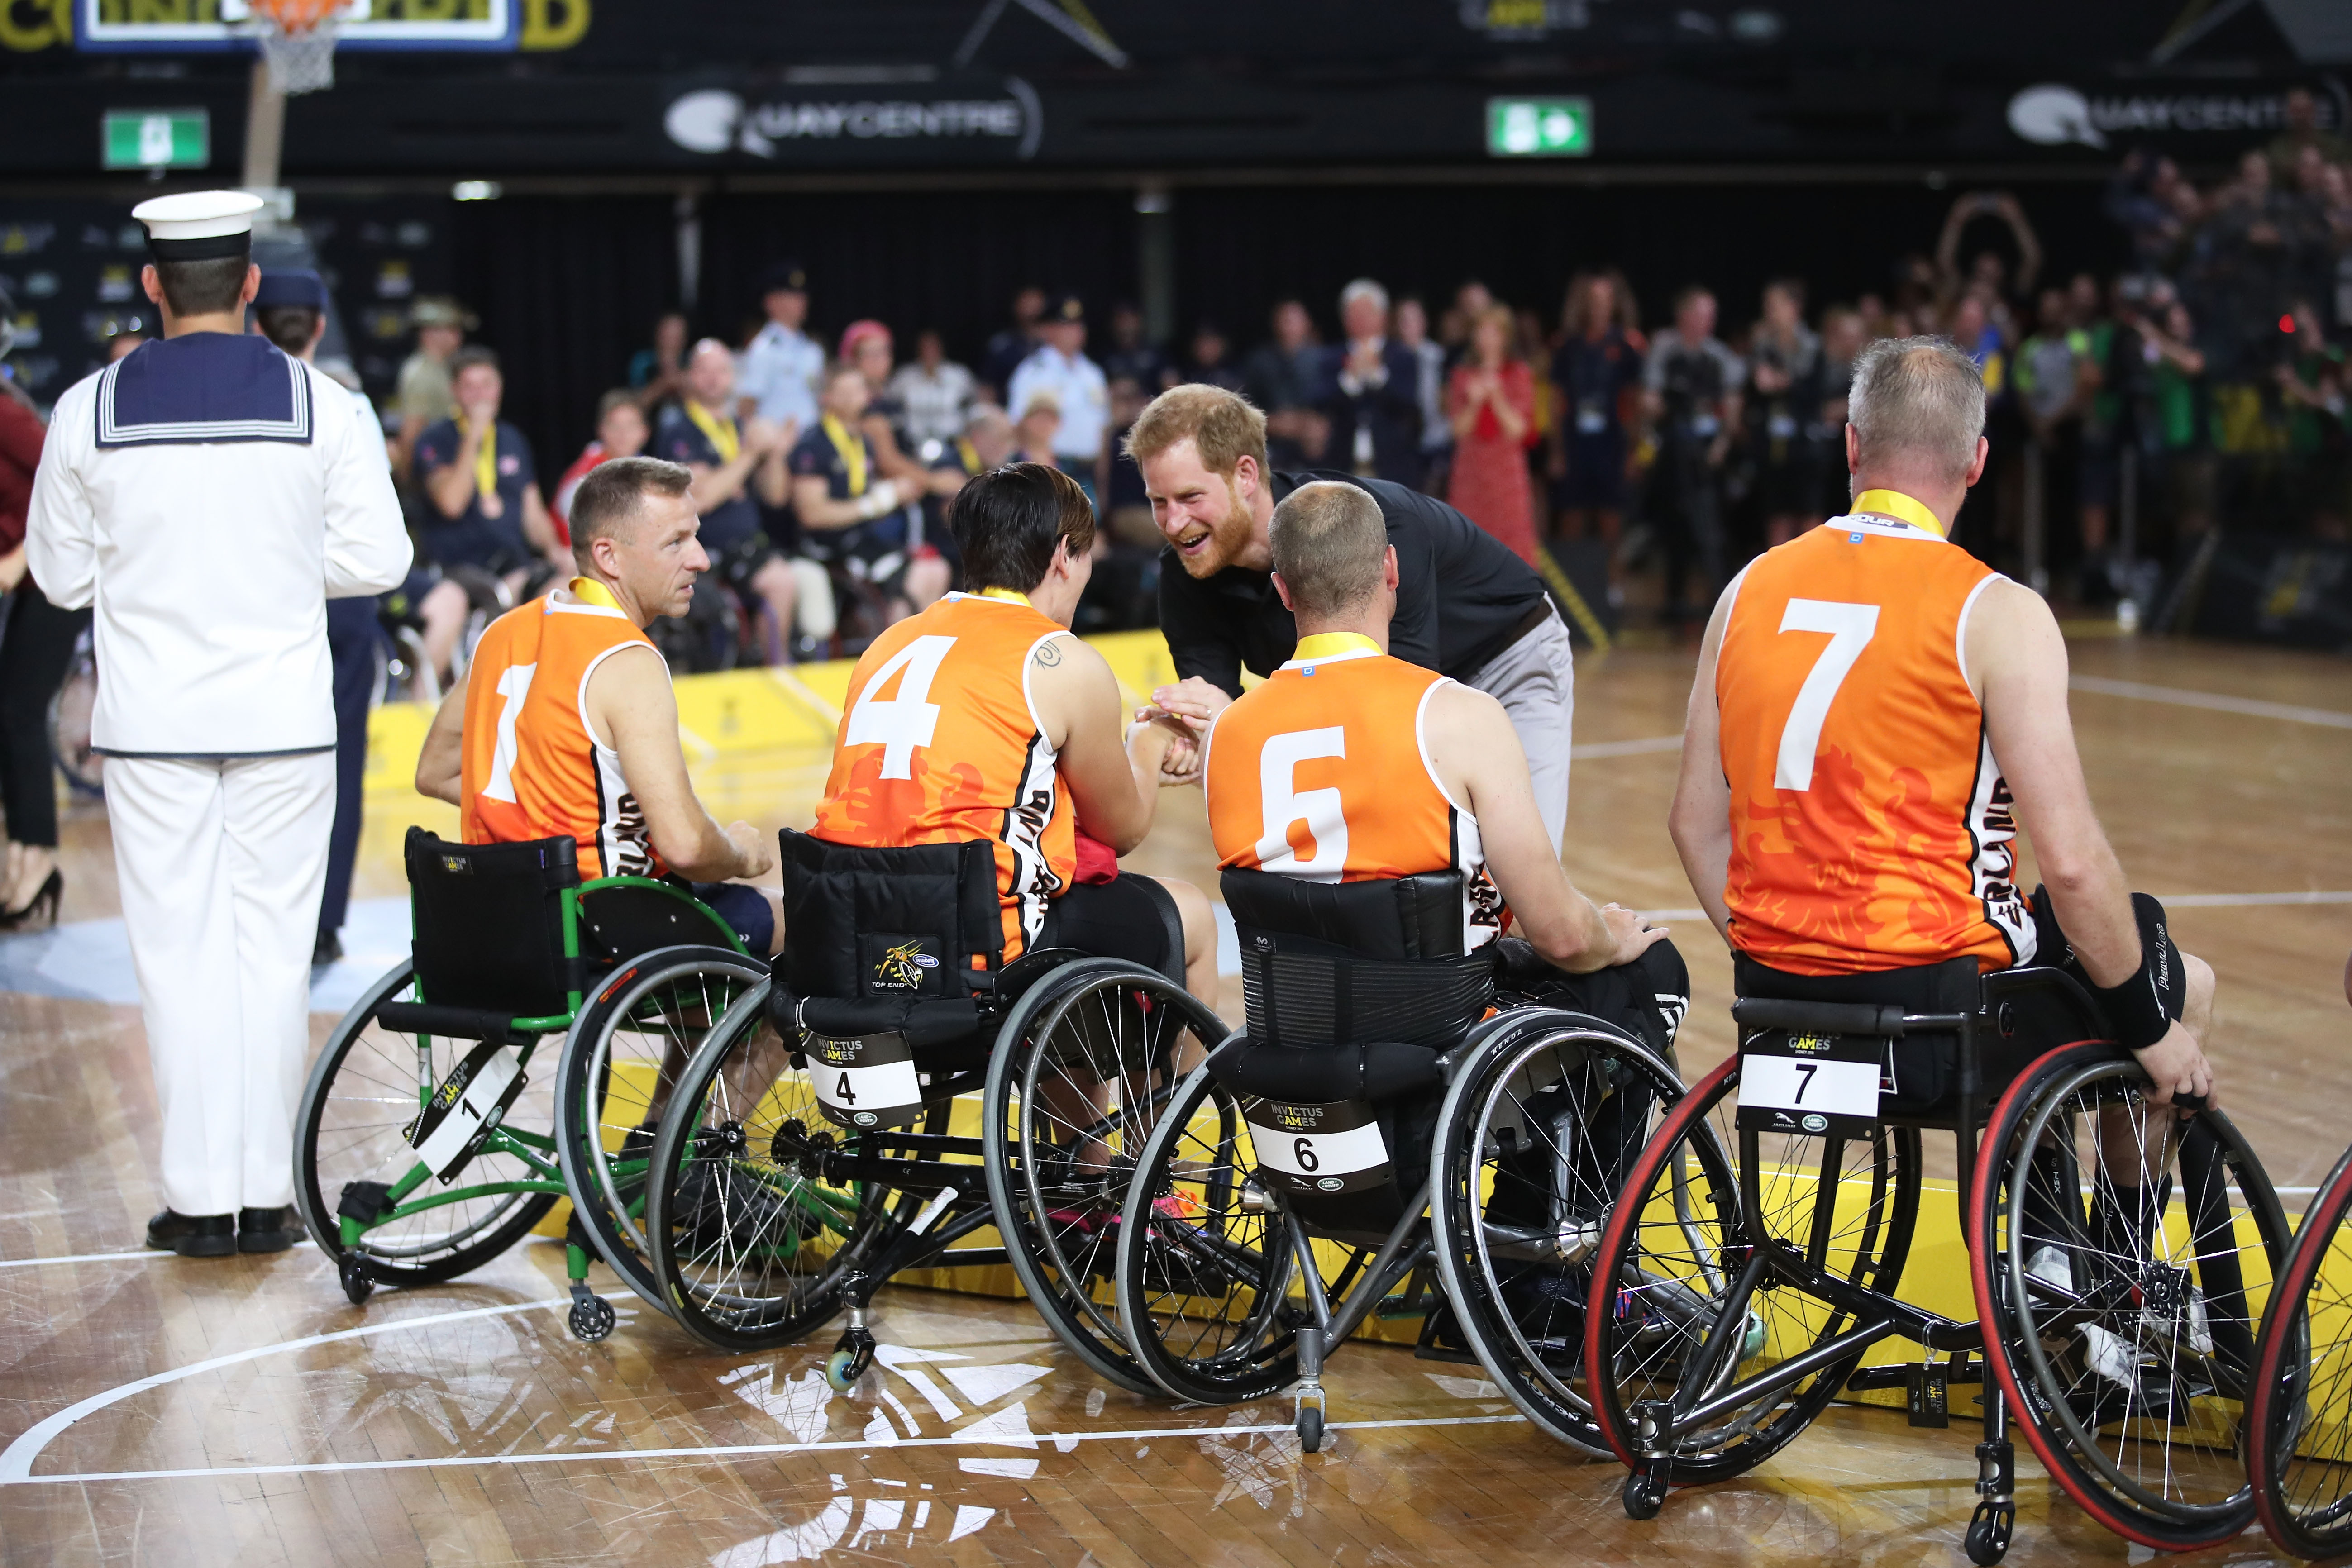 Prince Harry, Duke of Sussex congratulates the silver medallists the Netherlands after the Wheelchair Basketball gold medal match during day eight of the Invictus Games Sydney 2018 at on October 27, 2018 in Sydney, Australia.